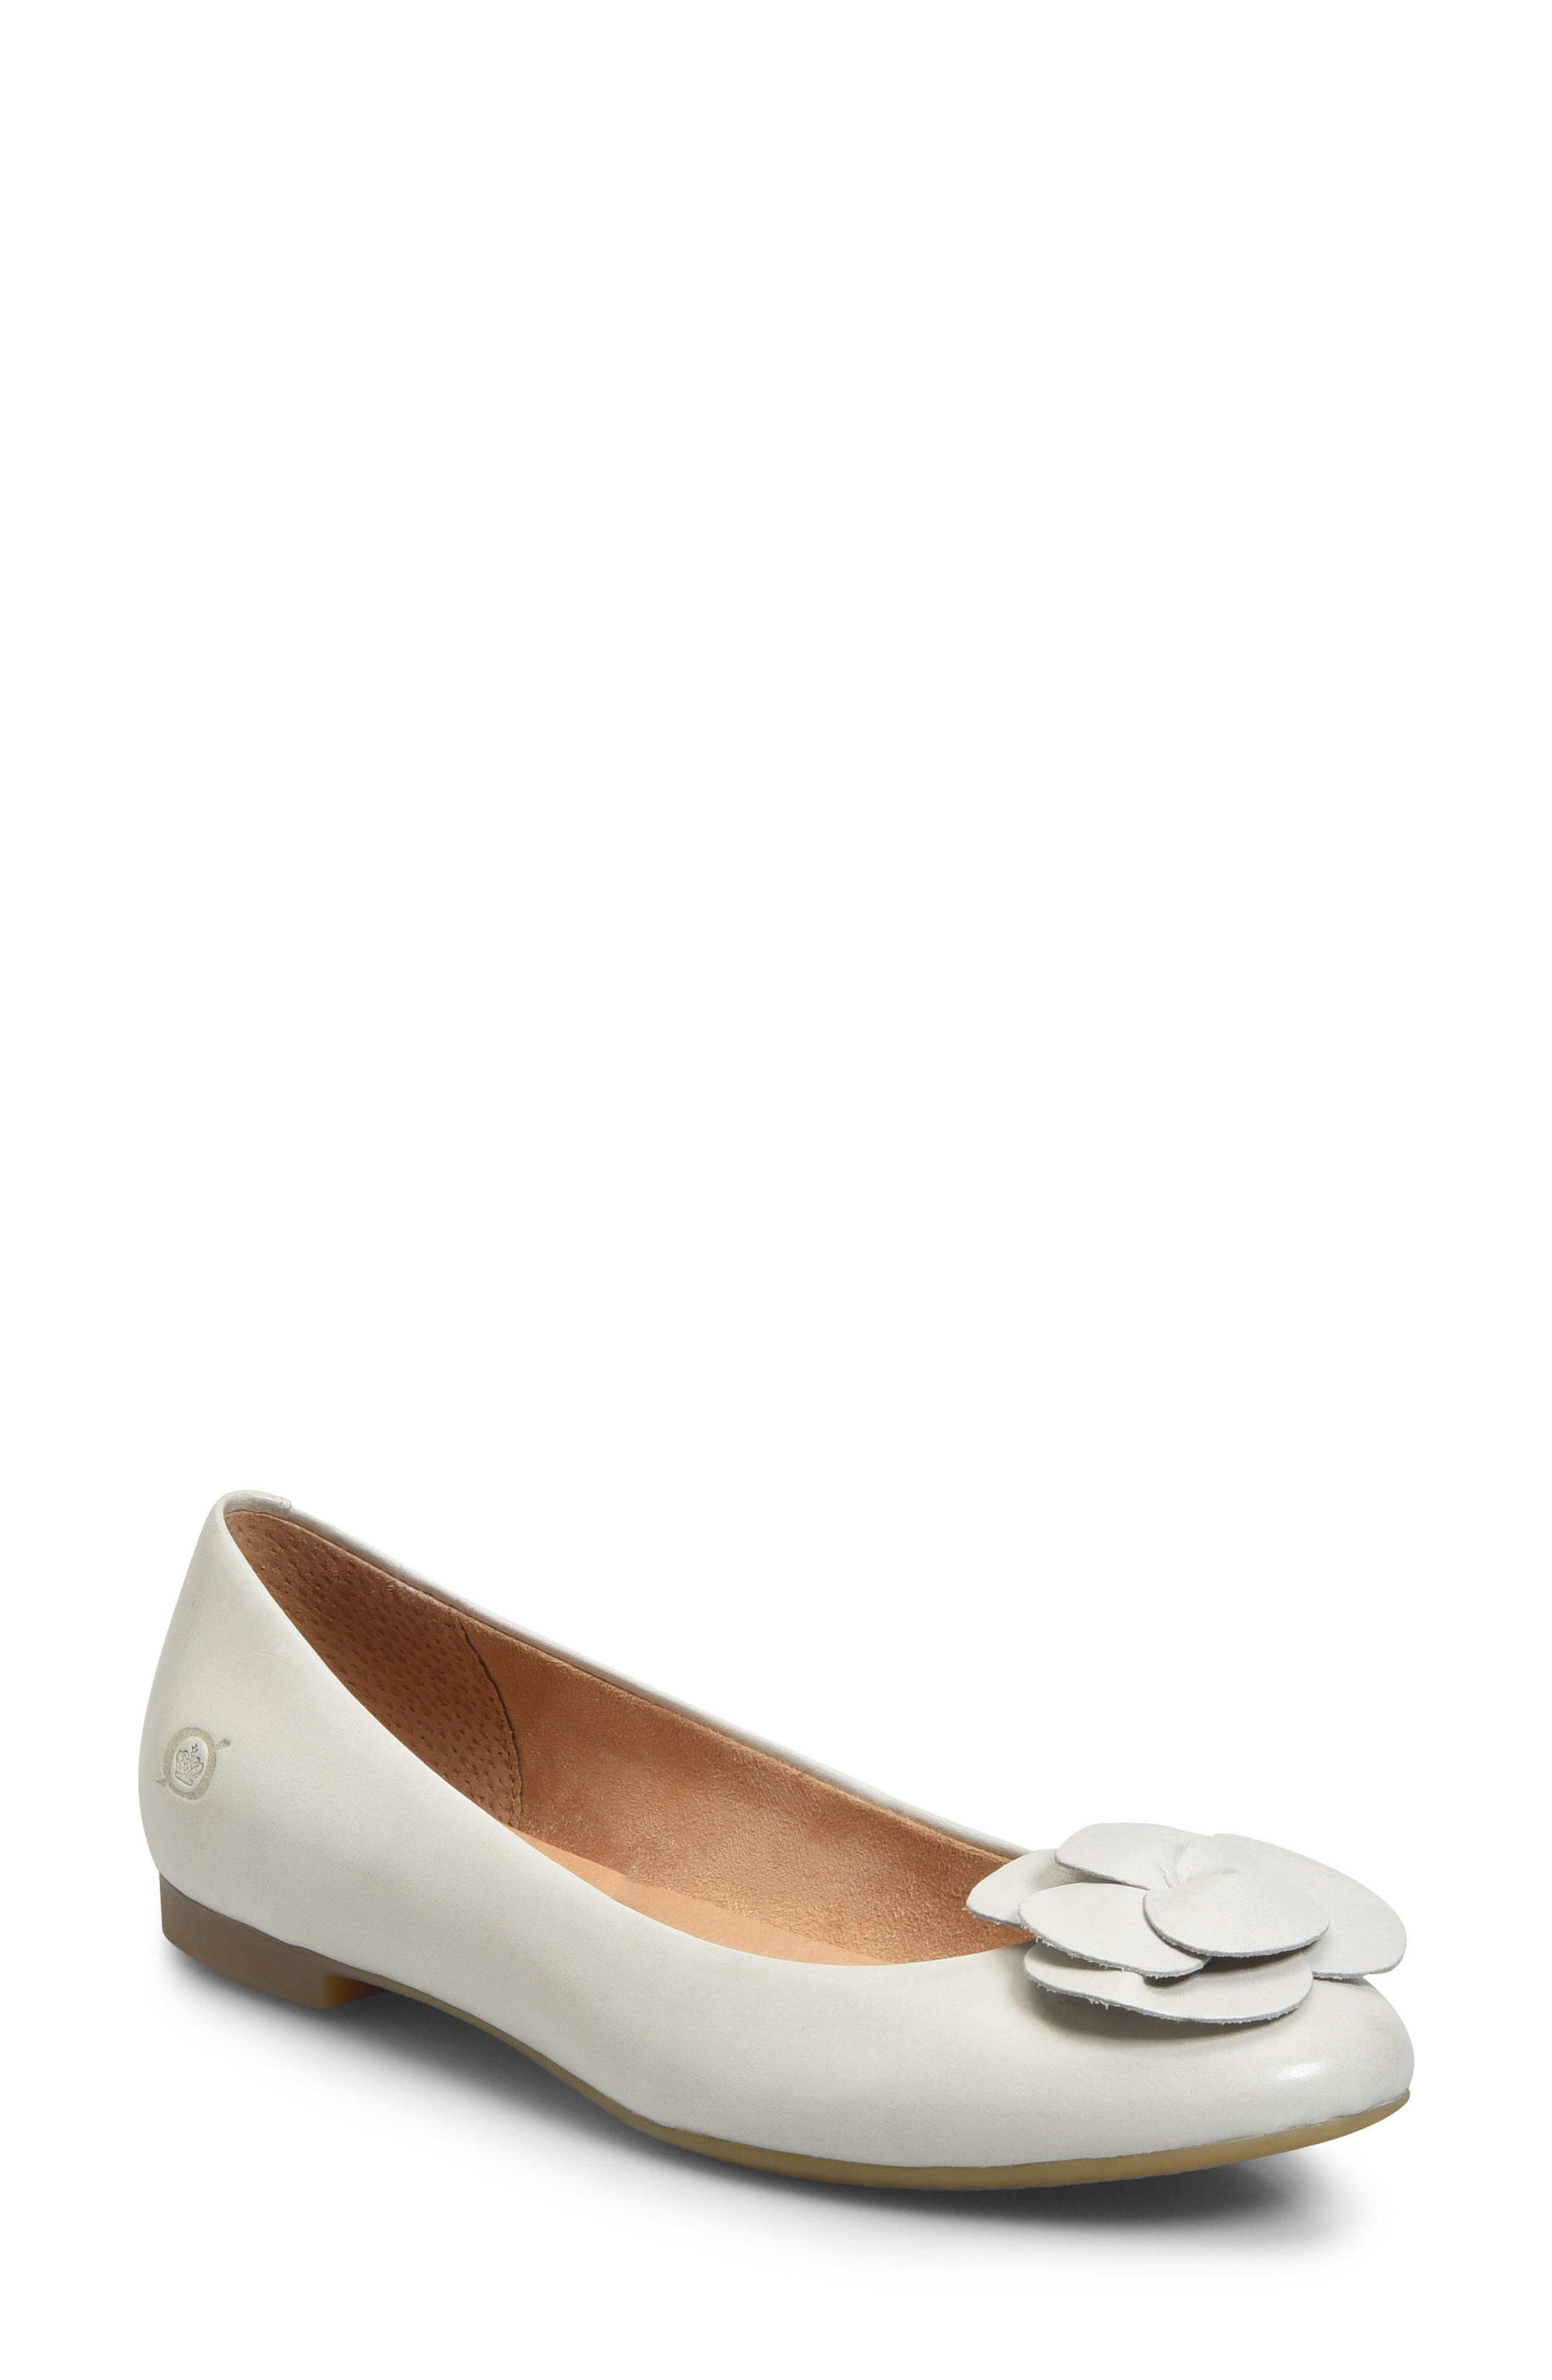 Annelie Flat,                         Main,                         color, White Leather